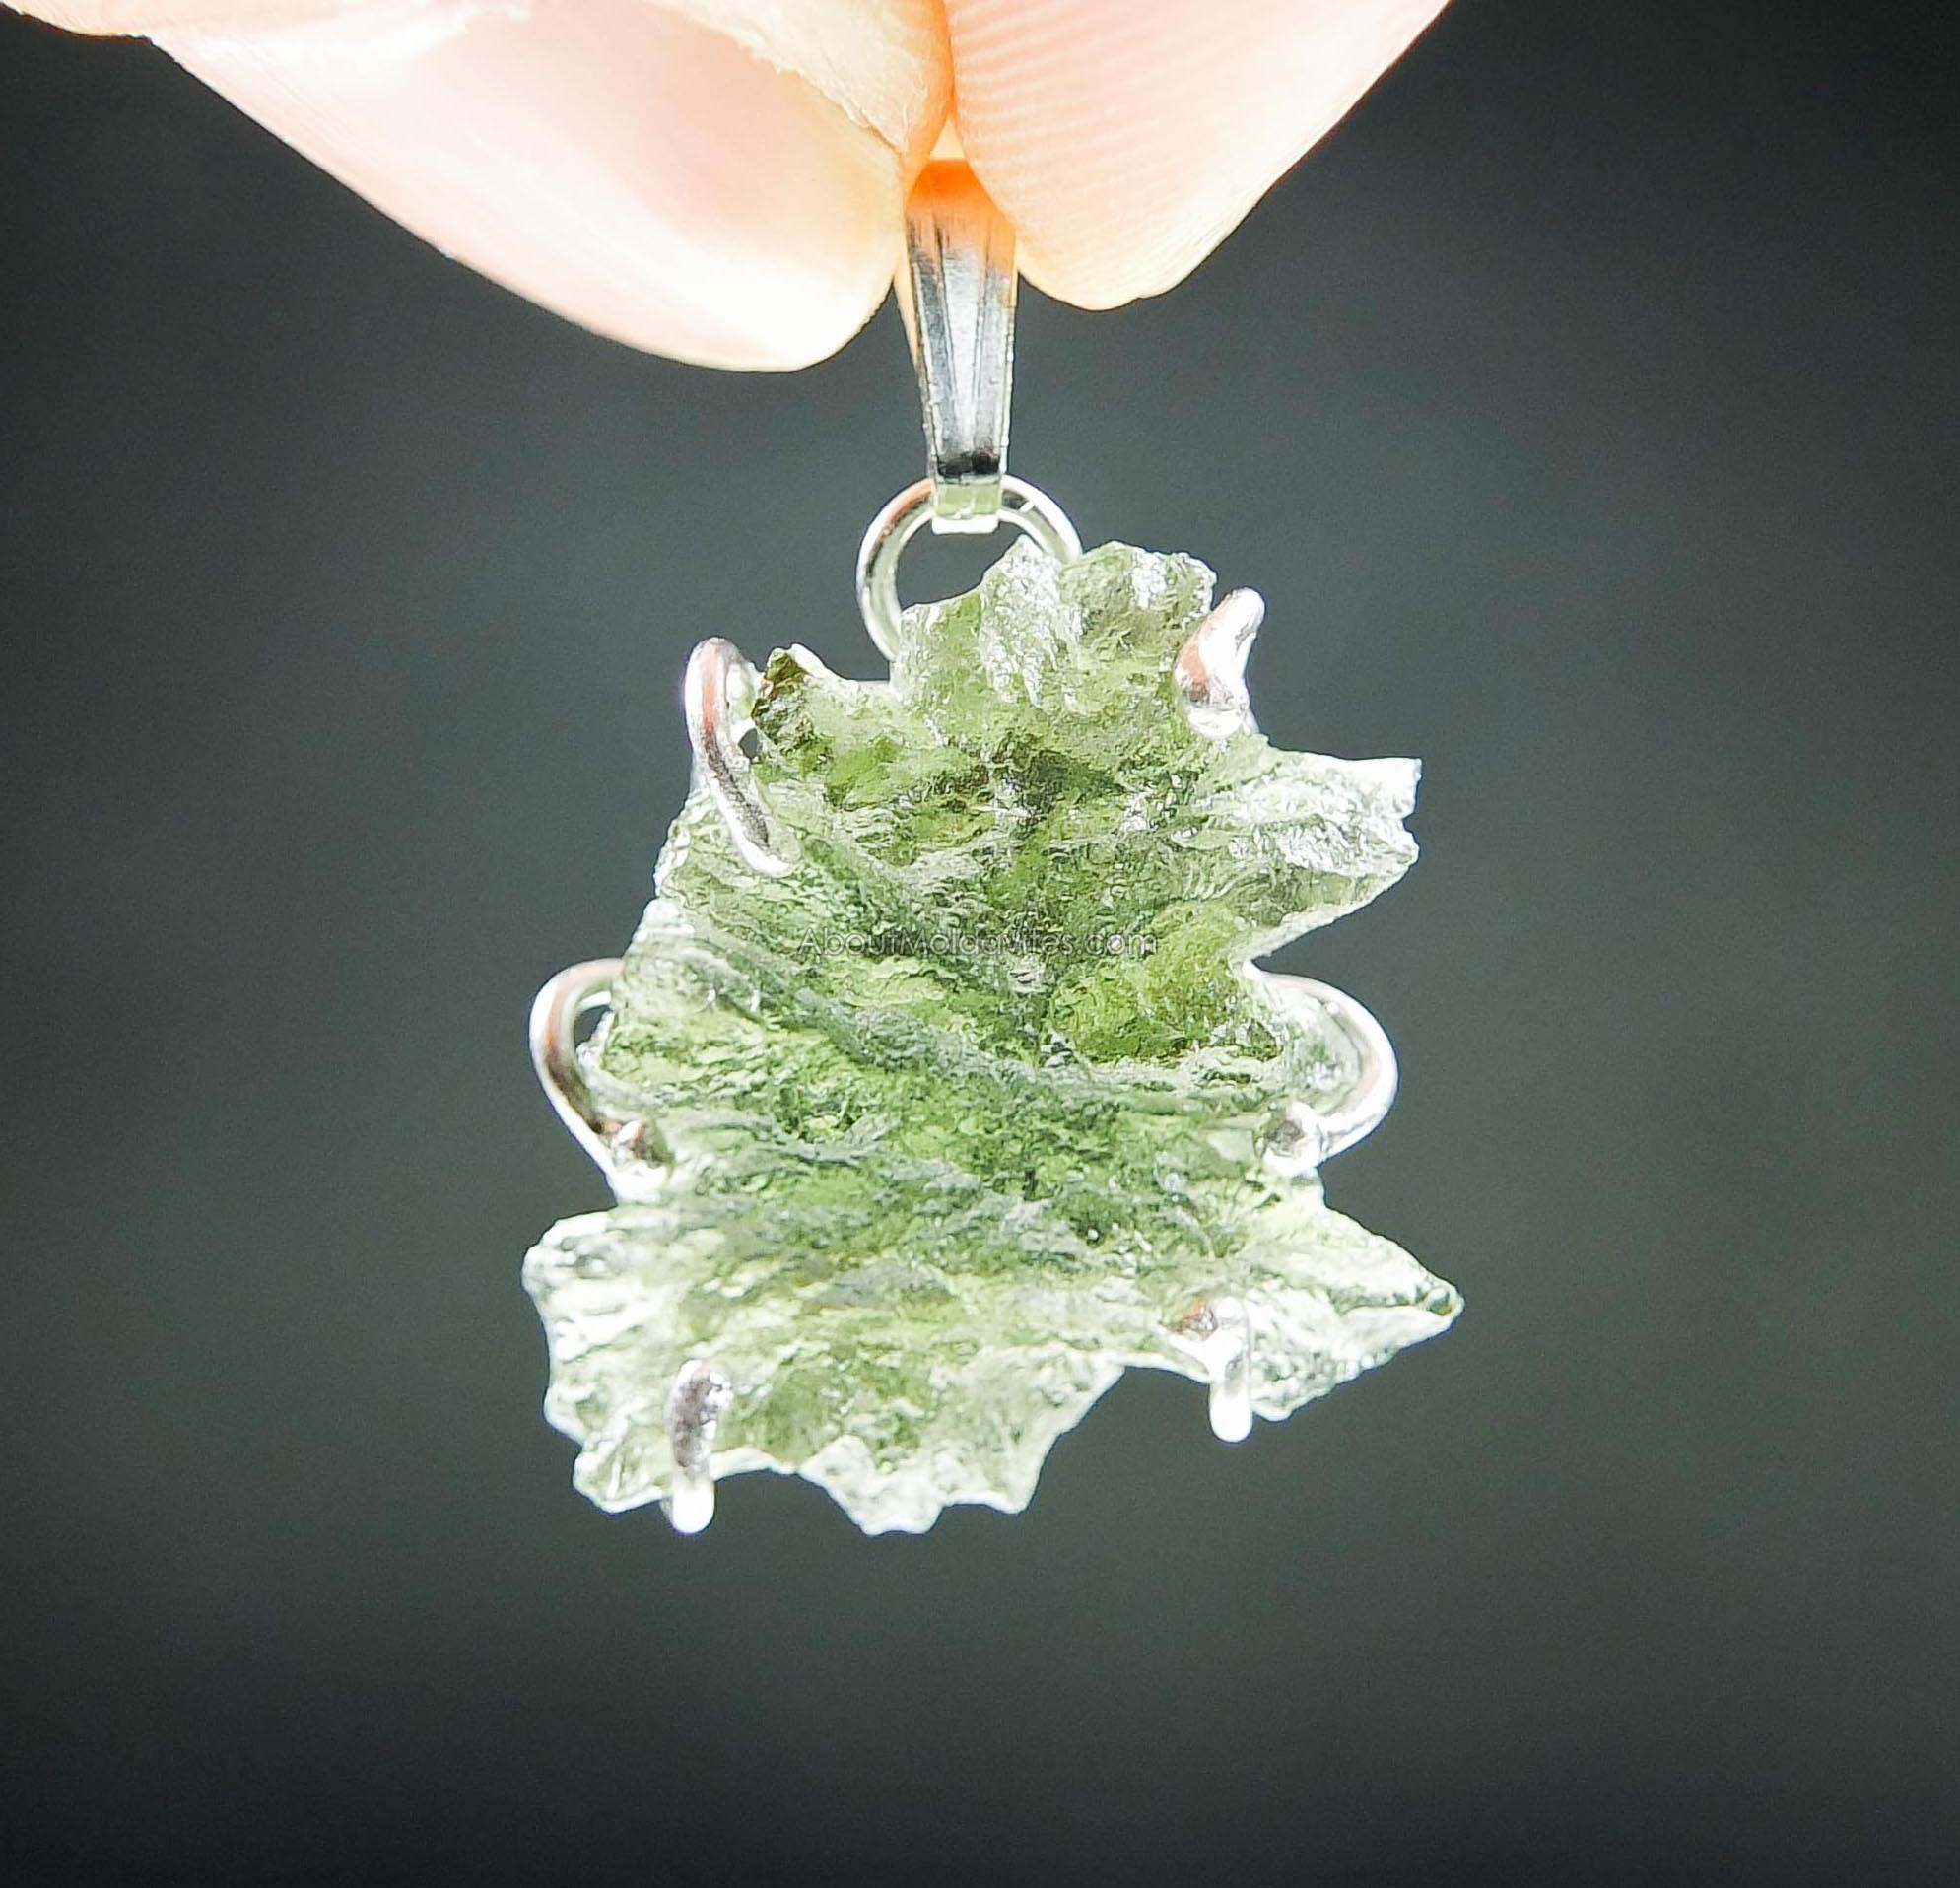 Pendant - moldavite from Besednice (hedgehog)